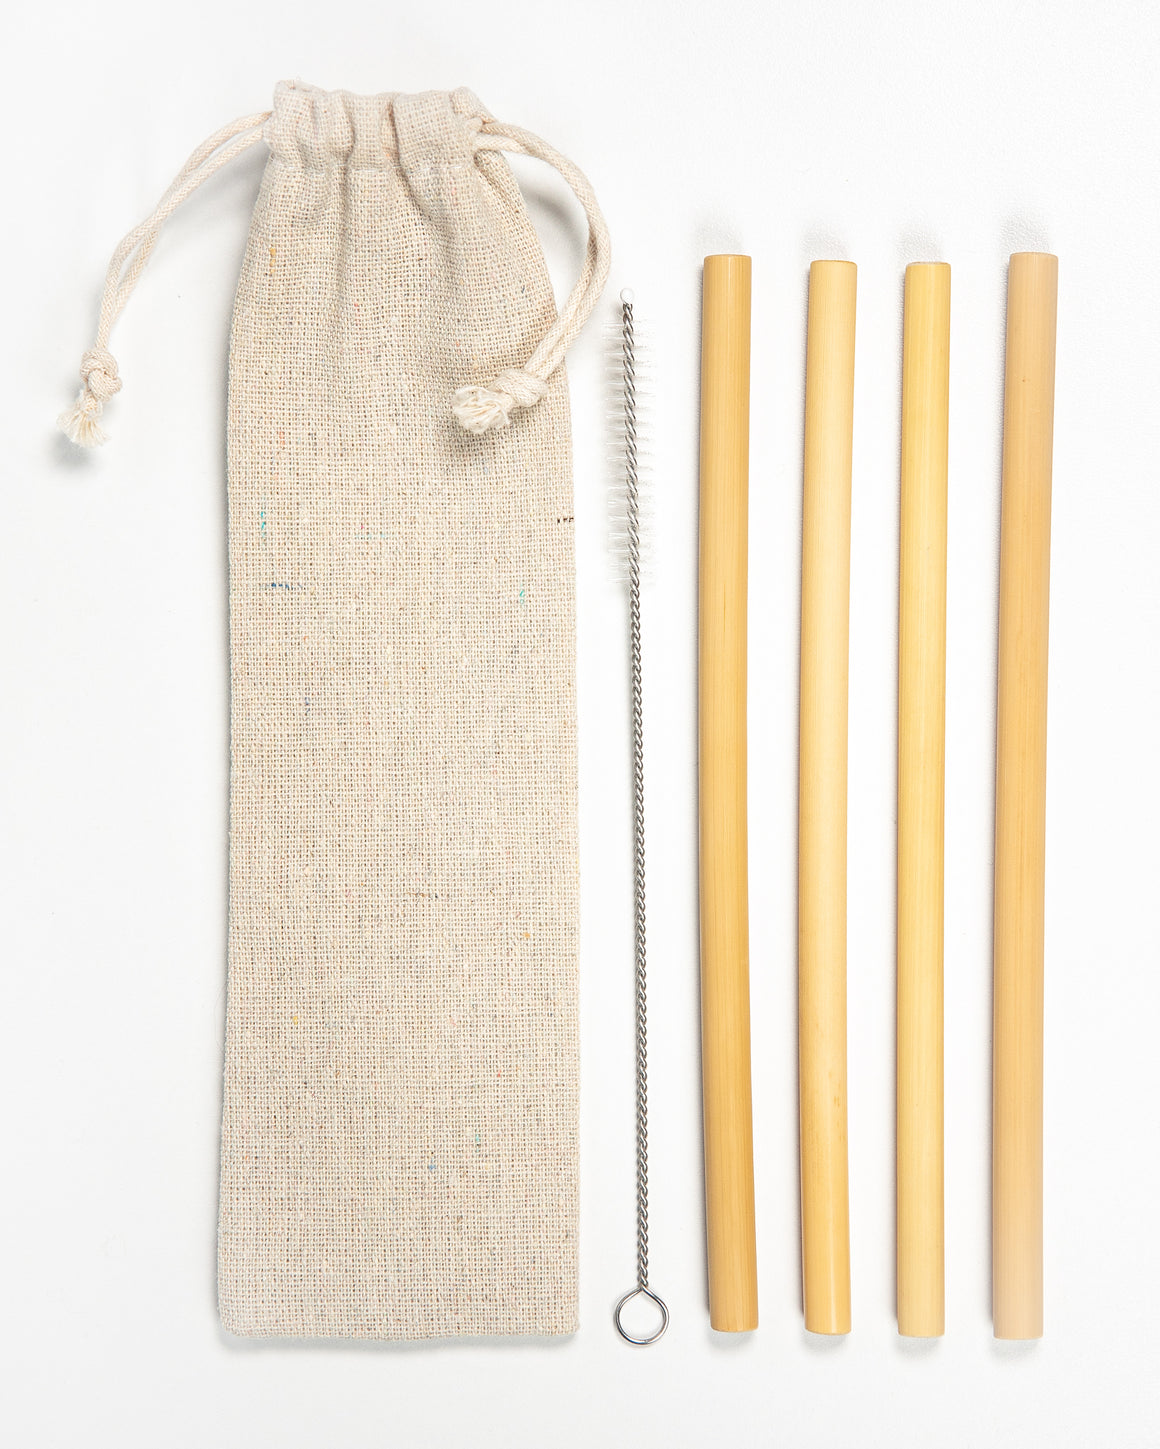 Reusable Bamboo Straw Sets